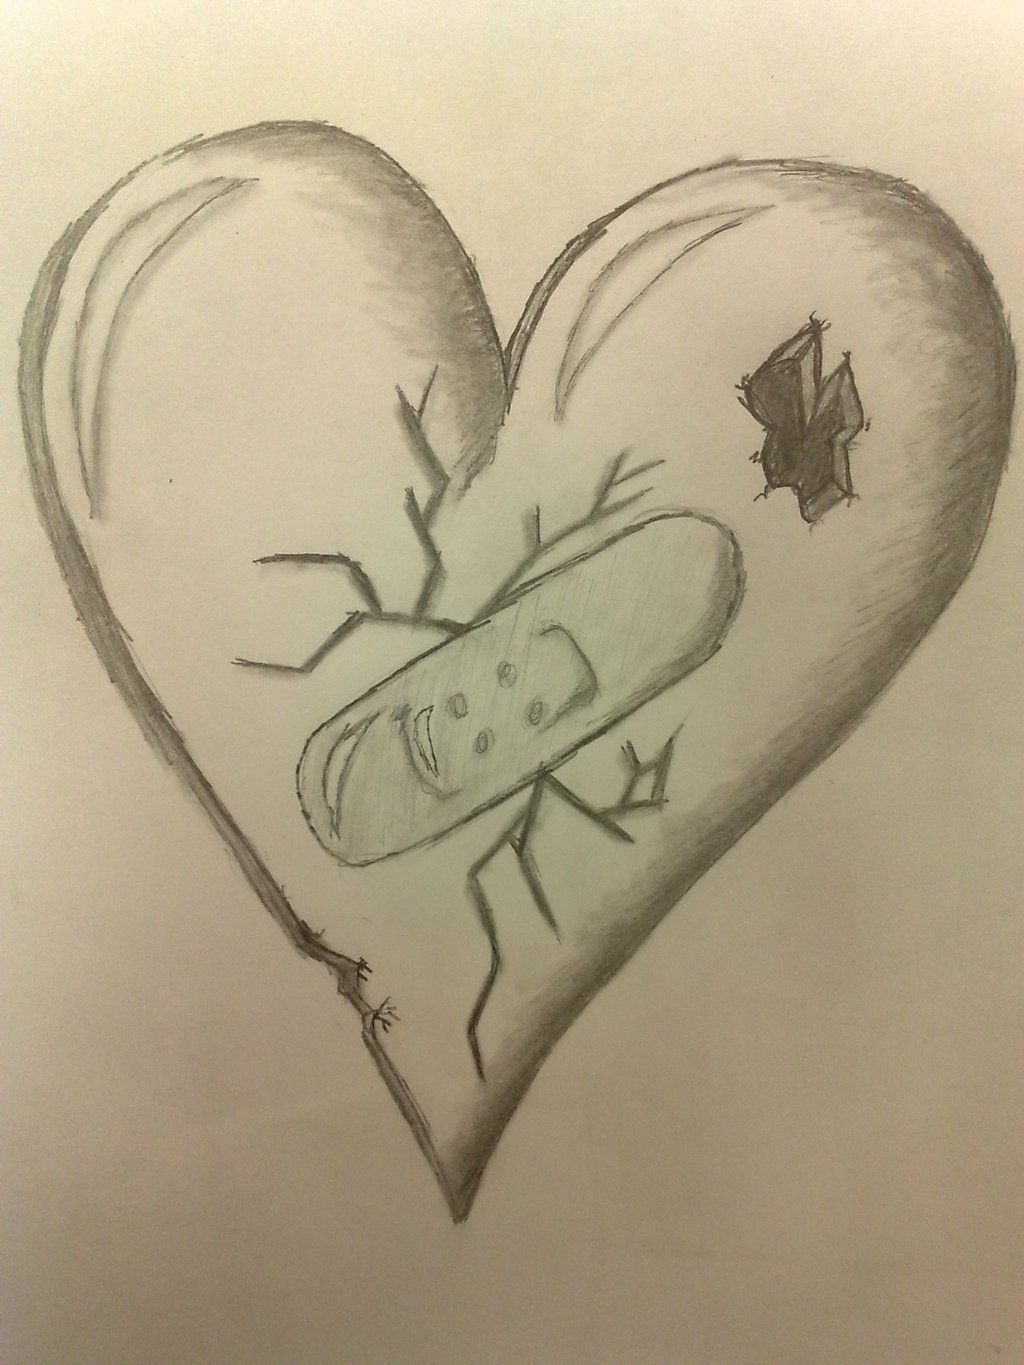 Pretty broken hearts drawings free download cool broken hearts drawings broken heart healing